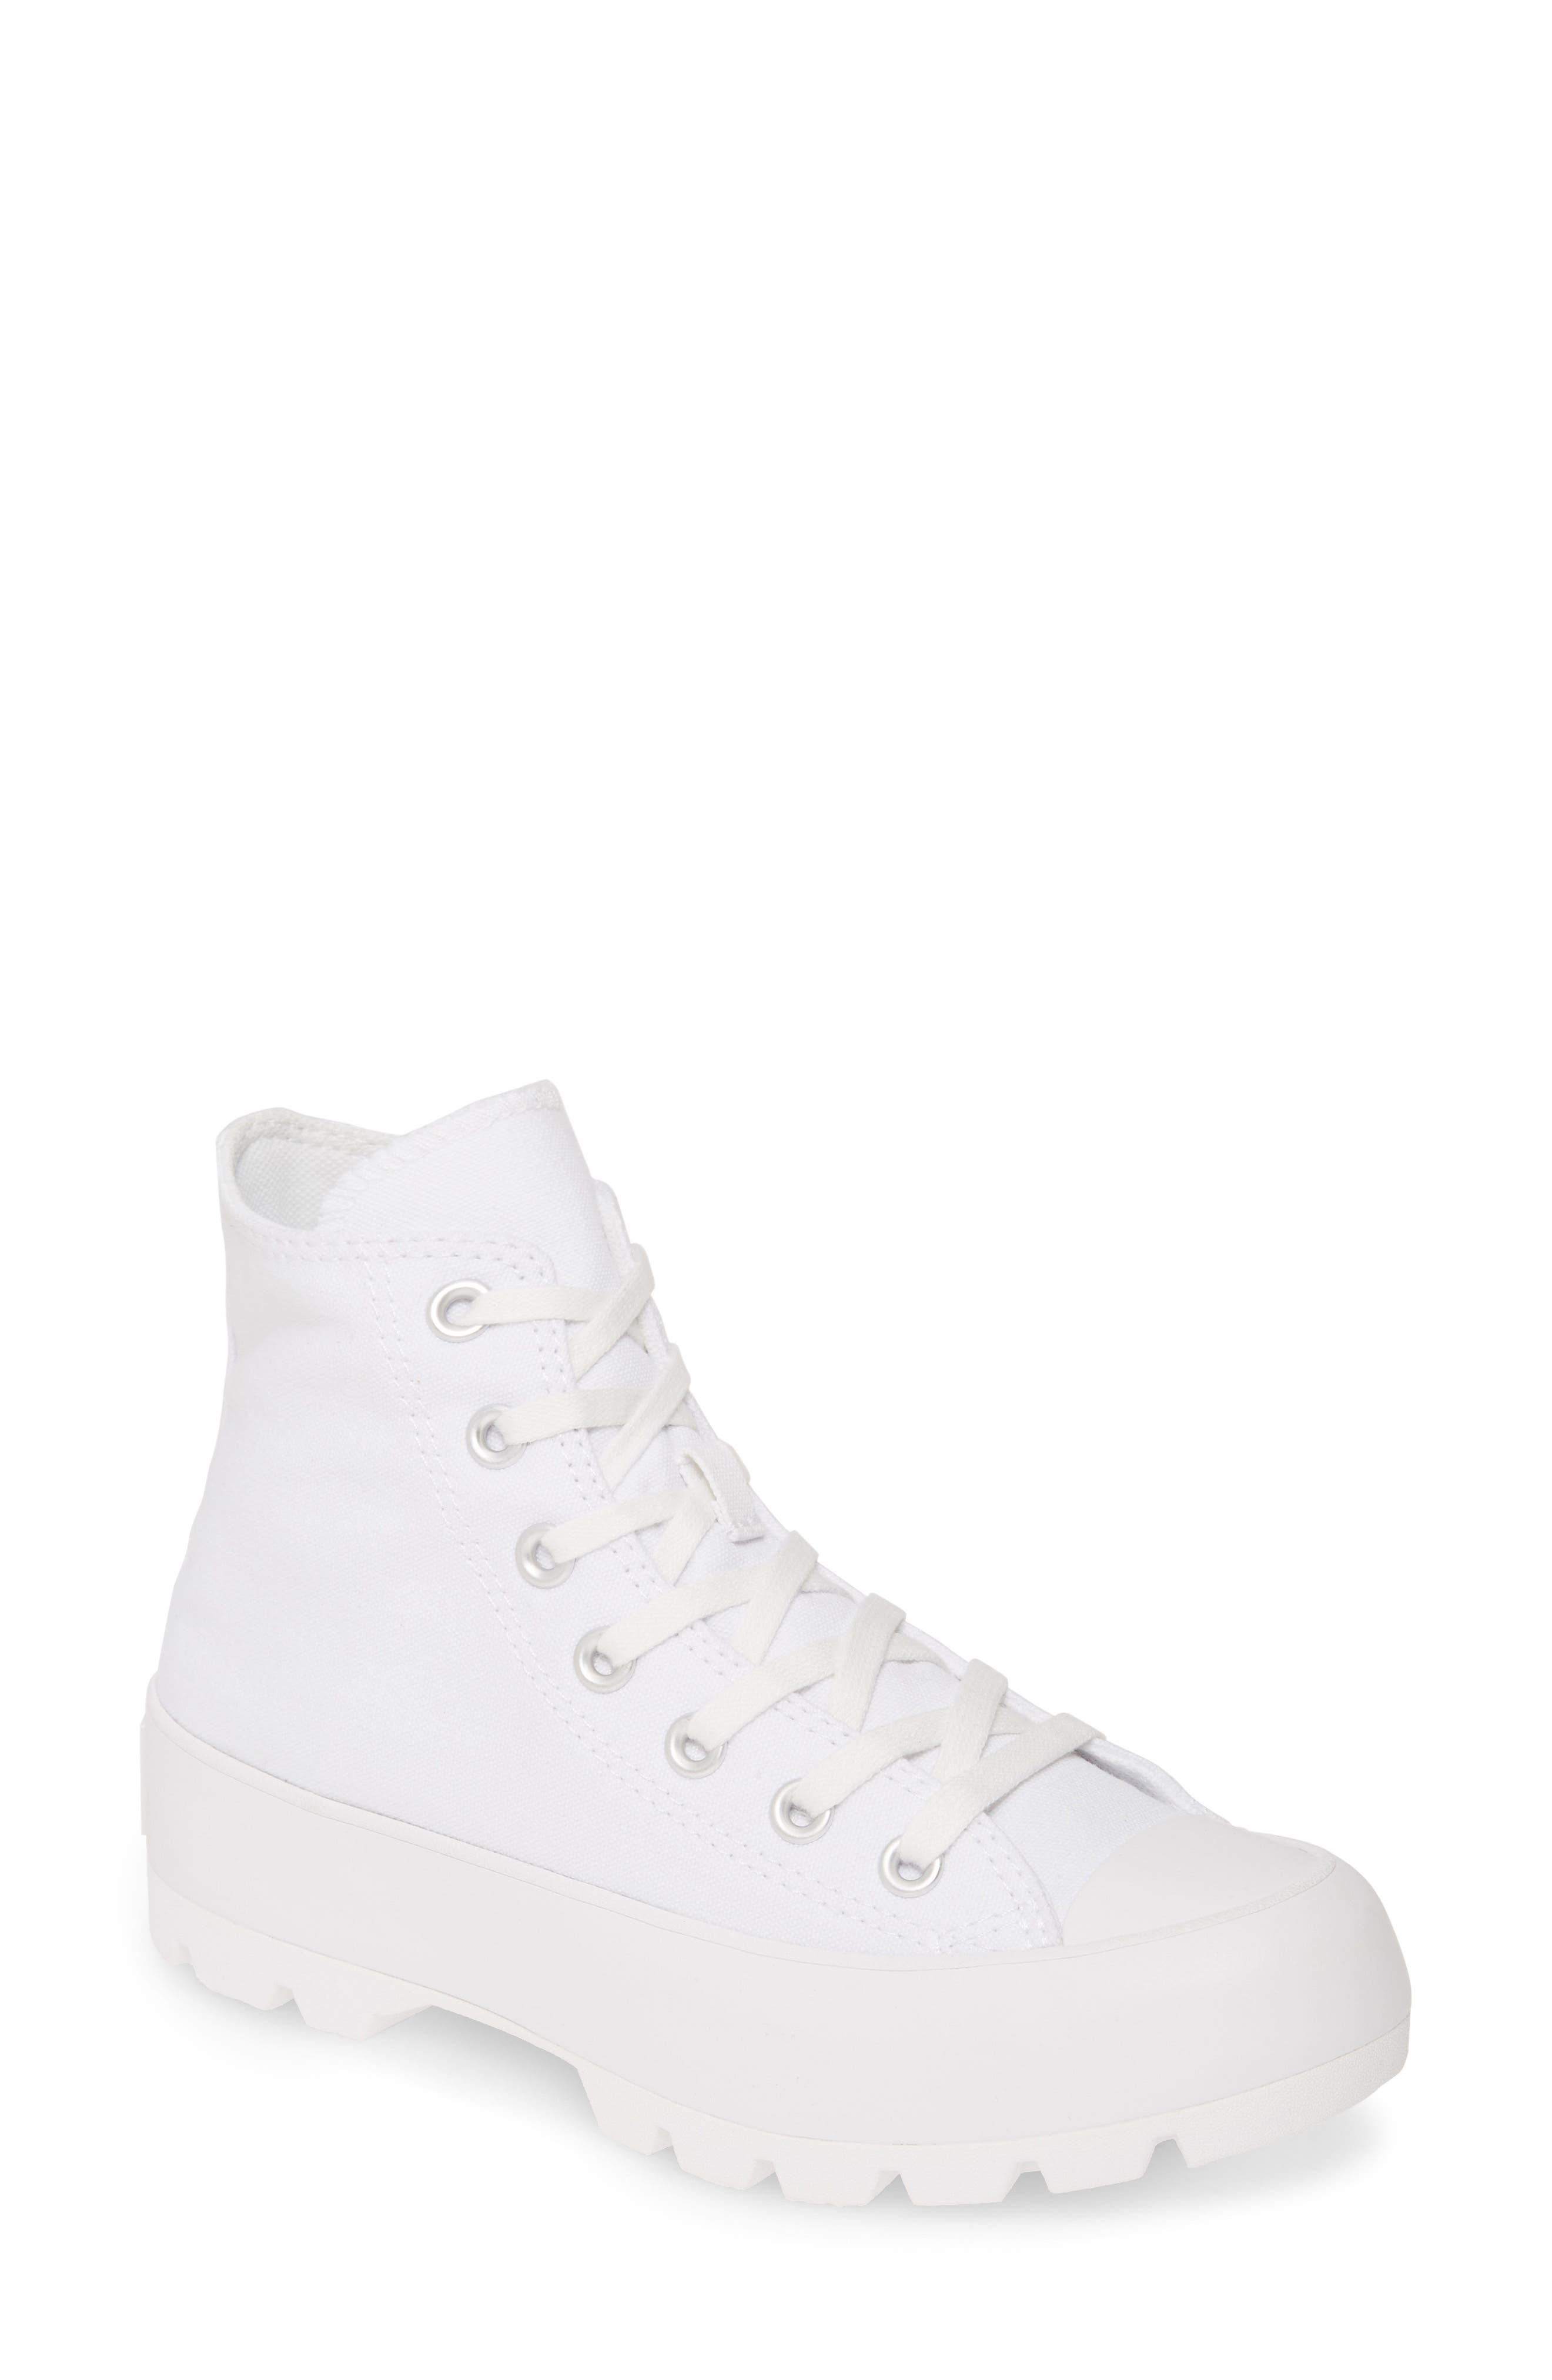 Details about CONVERSE CHUCK TAYLOR ALL STAR SEASONAL COLOR High Top UNISEX: Aphid Green